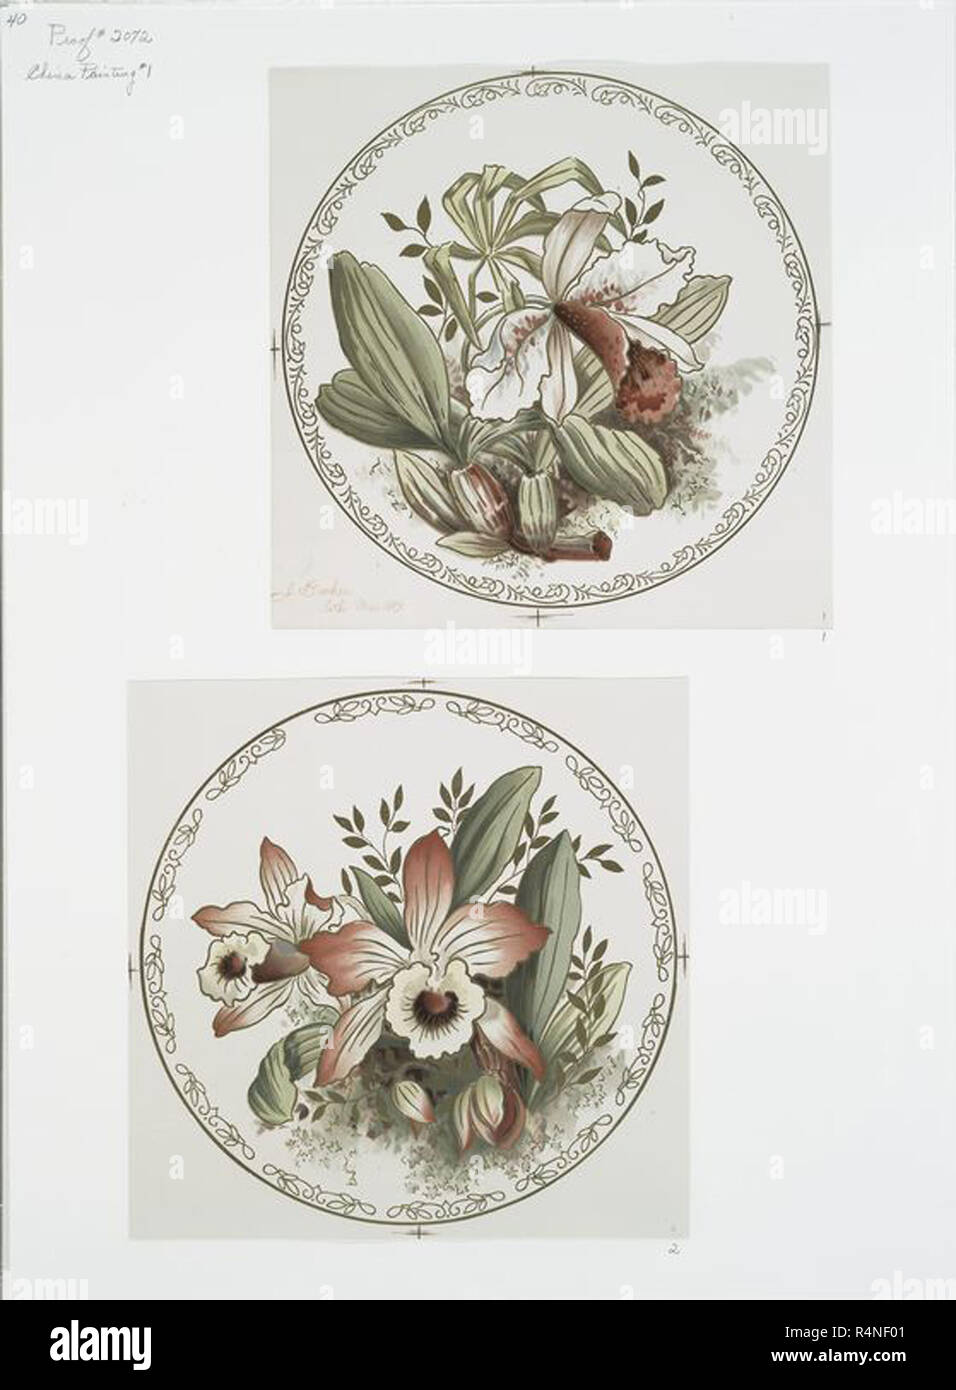 vintage garden element graphic illustration from either vintage art or theatrical design old classic illustrated flowers, trees, bushes plants etc Stock Photo